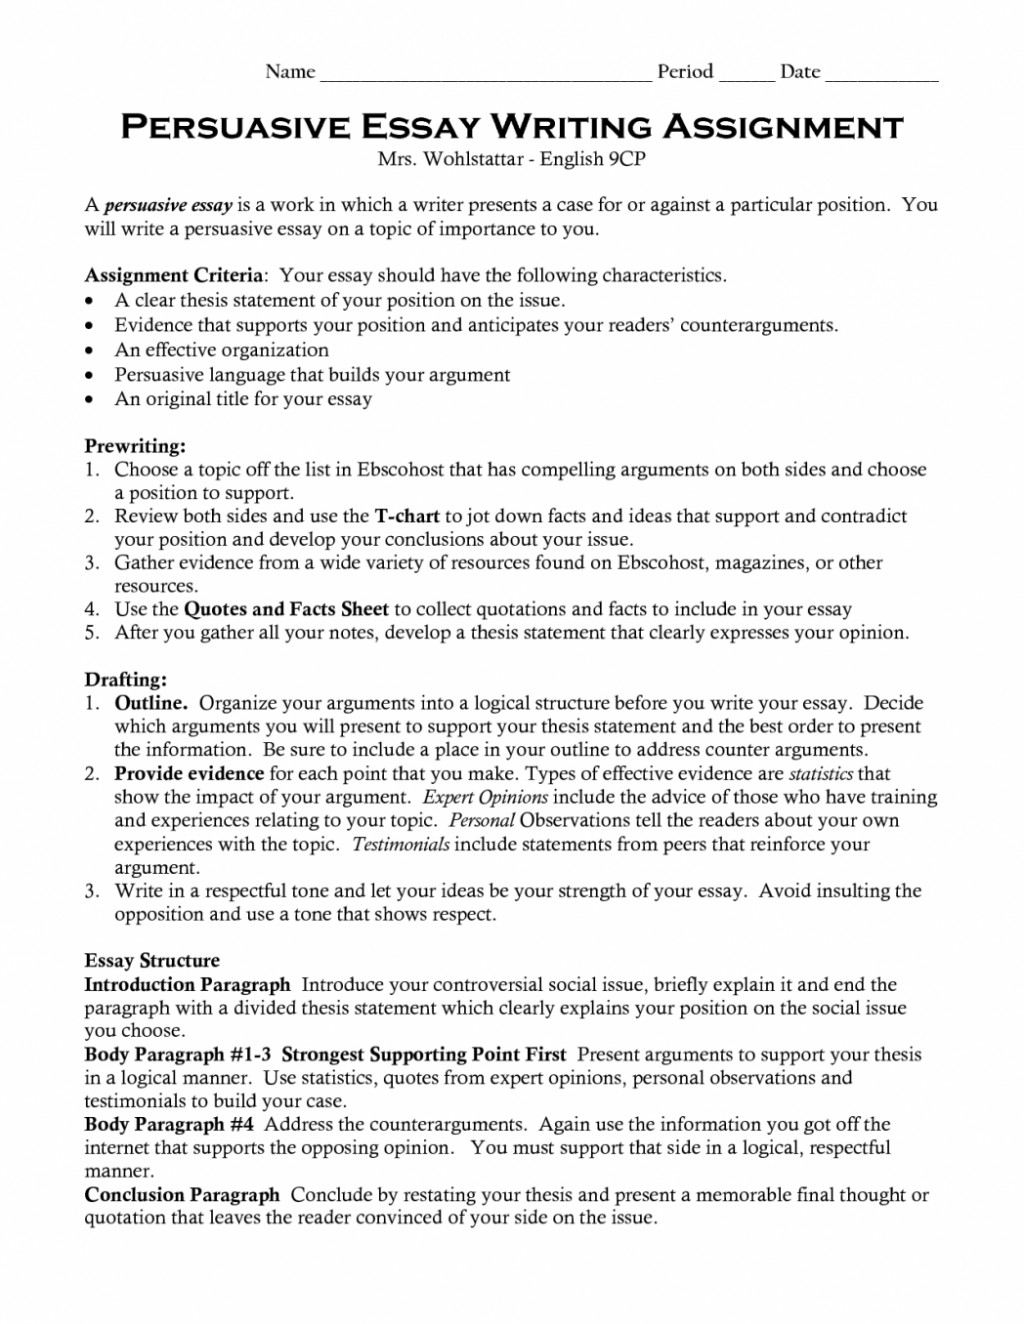 004 Persuasive Essay Thesismples Statement Of Topics For On Bullying Template V0c Introduction Paragraph Outline Hook In High School Conclusions 1048x1356 Fascinating Thesis Examples And Gathering Resources Worksheet Speech Sample Large